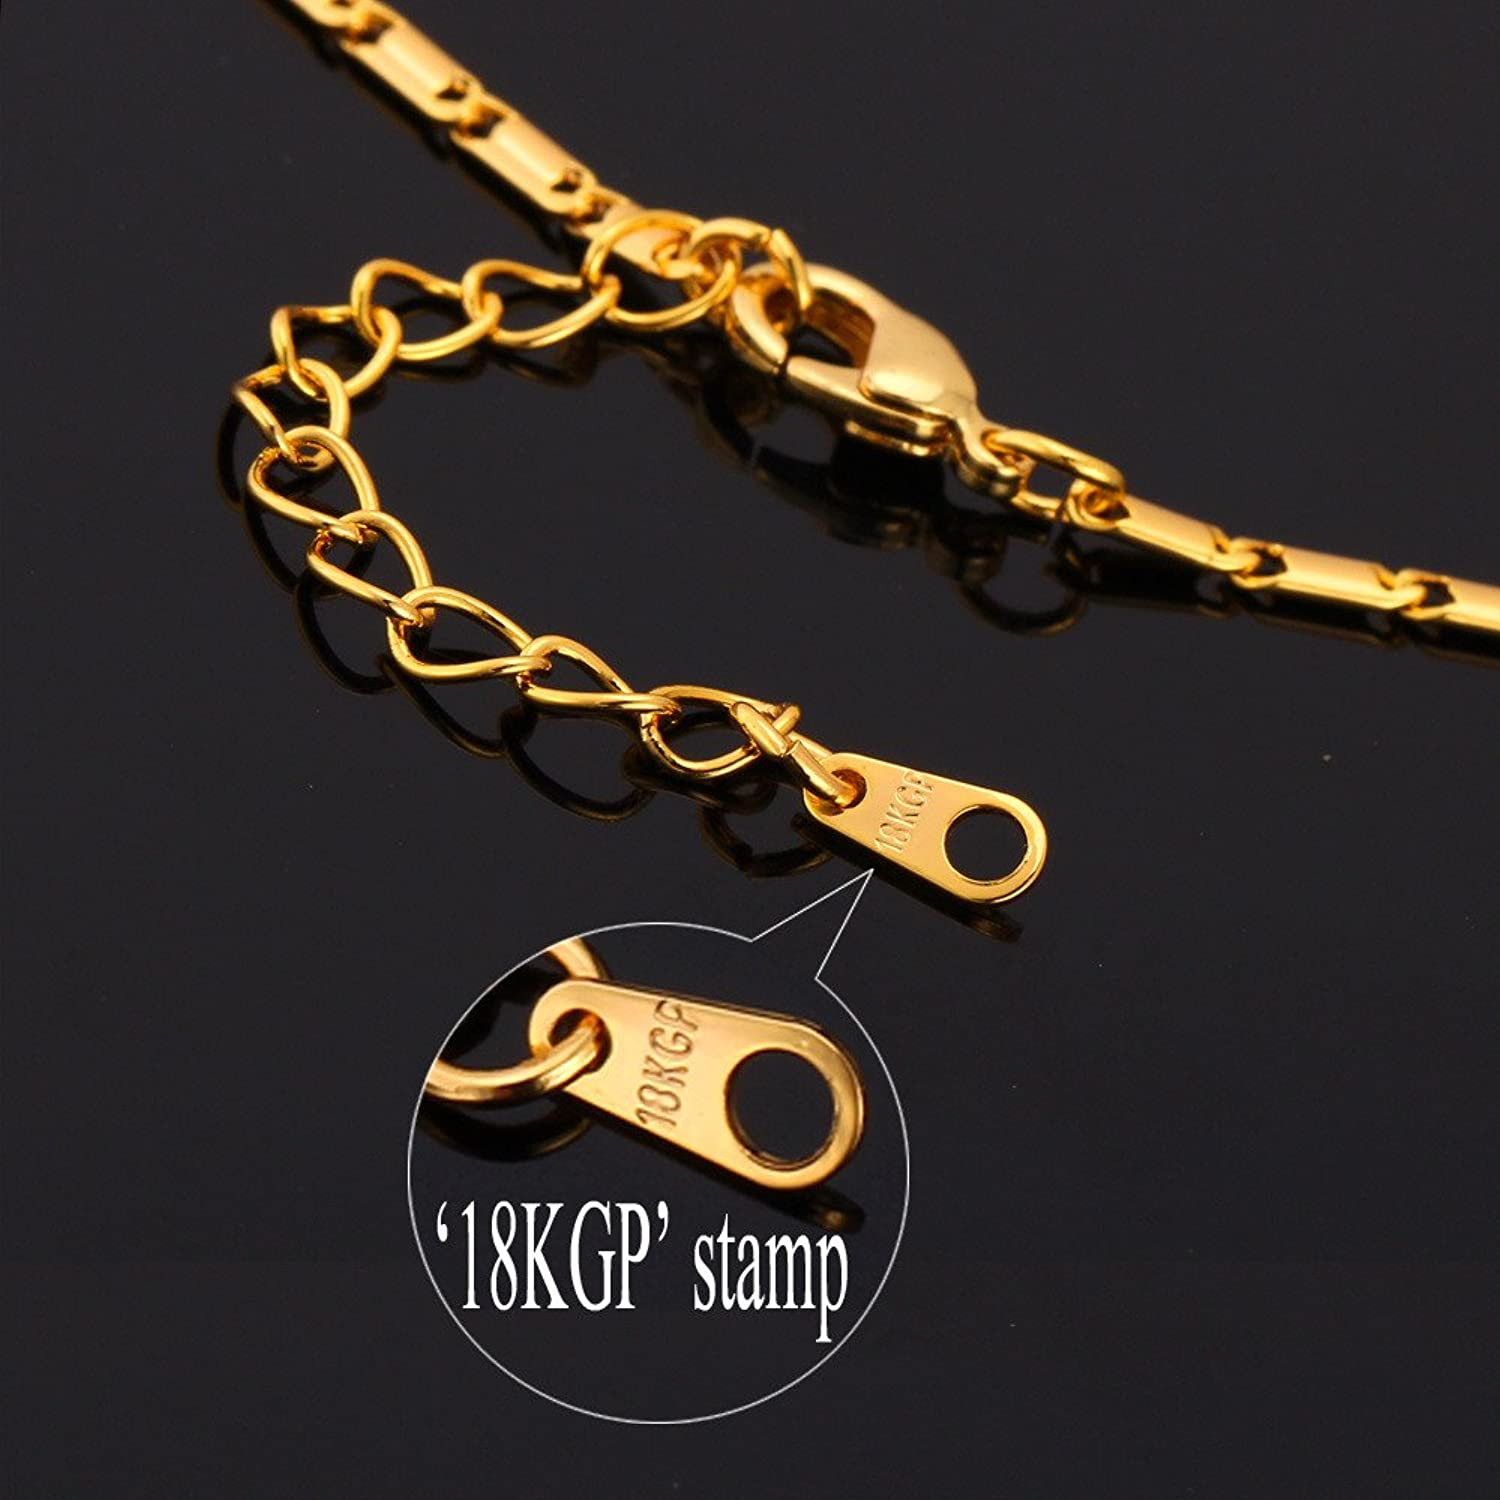 necklace filled online jewelry product necklaces with fingerprint china gold wholesalers store cheap wholesale s men texture chain